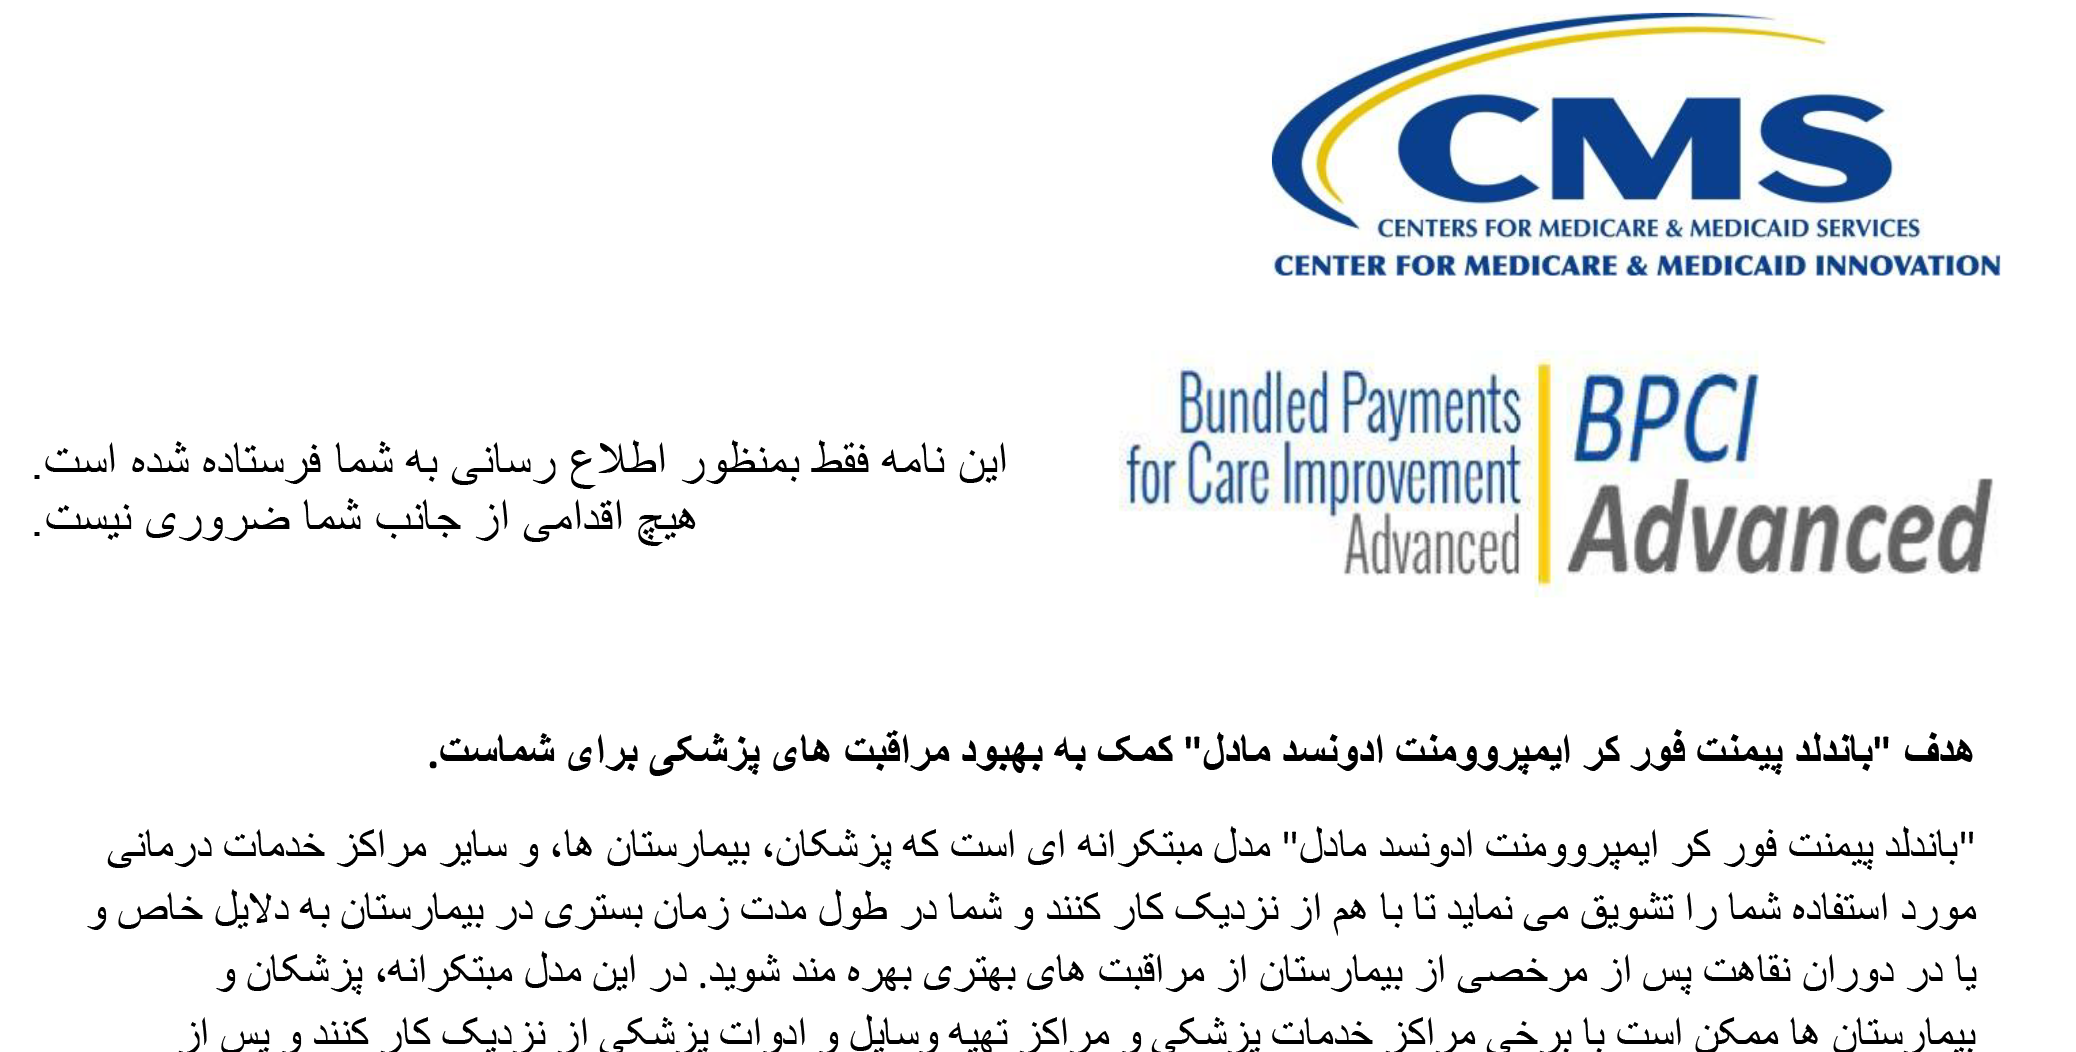 Healthcare translation in Farsi for CMS